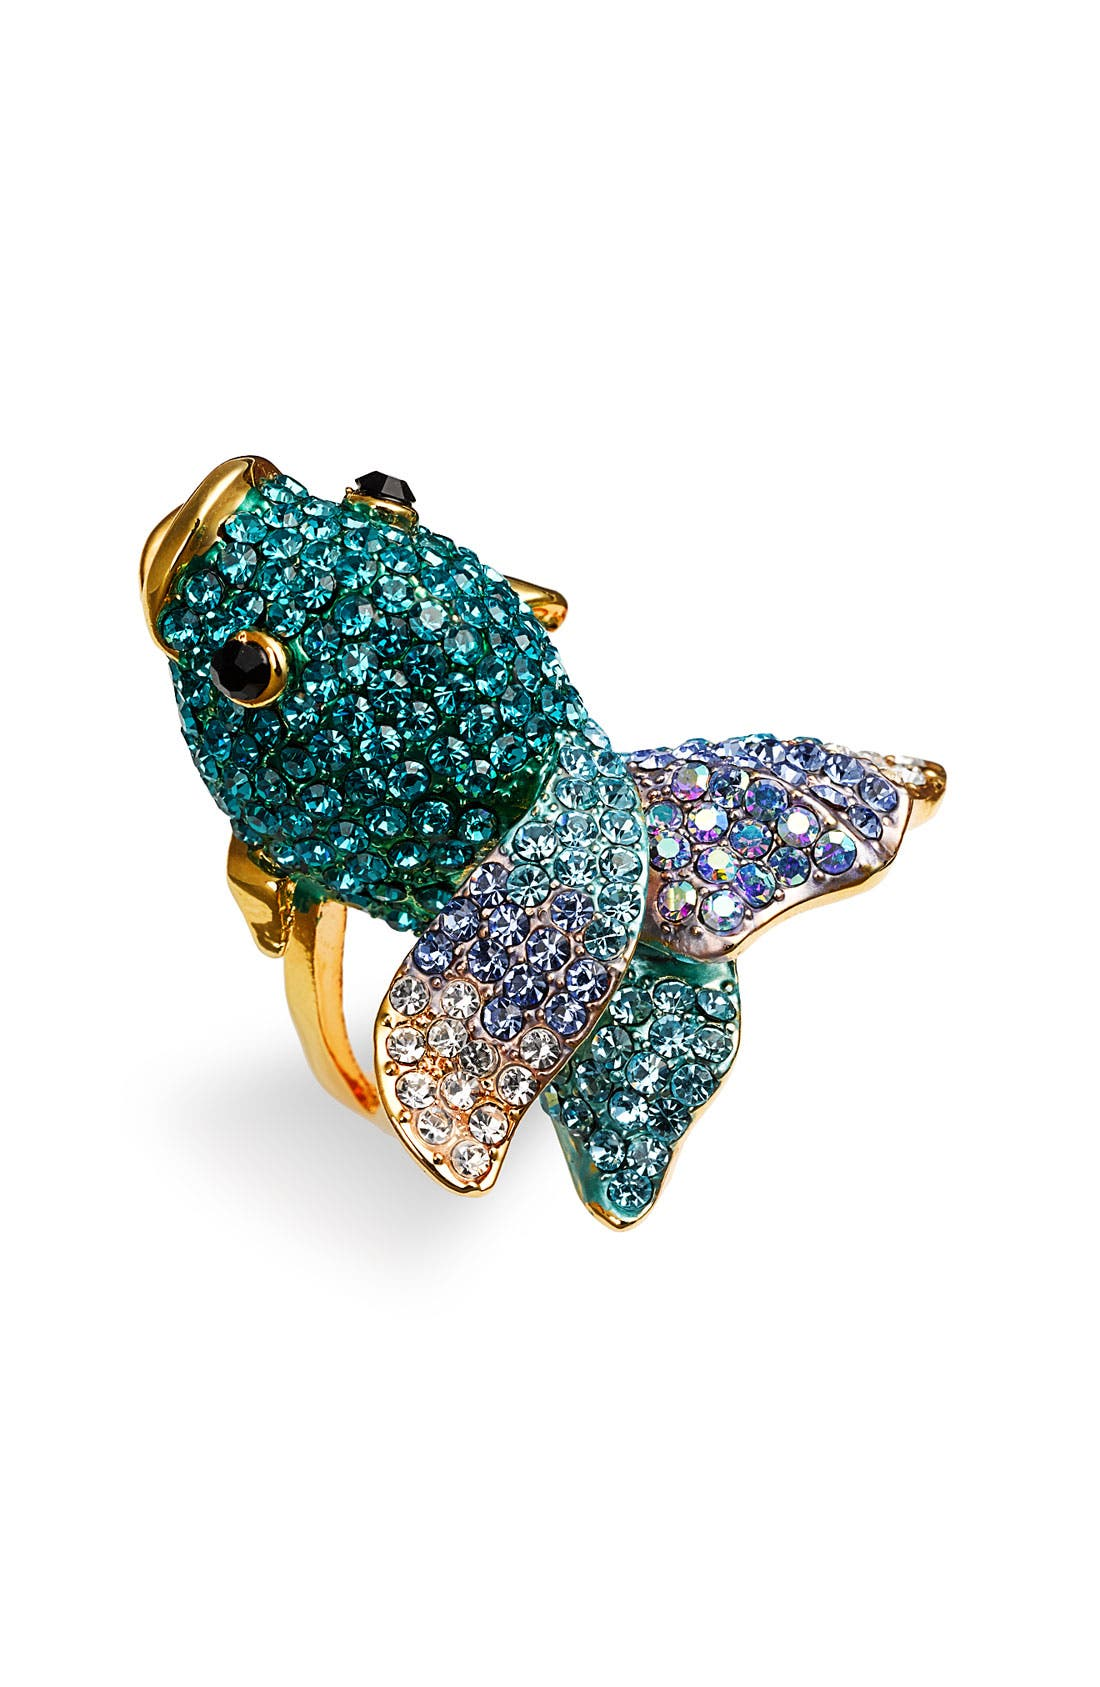 Main Image - Cara Accessories 'Critters' Blowfish Crystal Stretch Ring